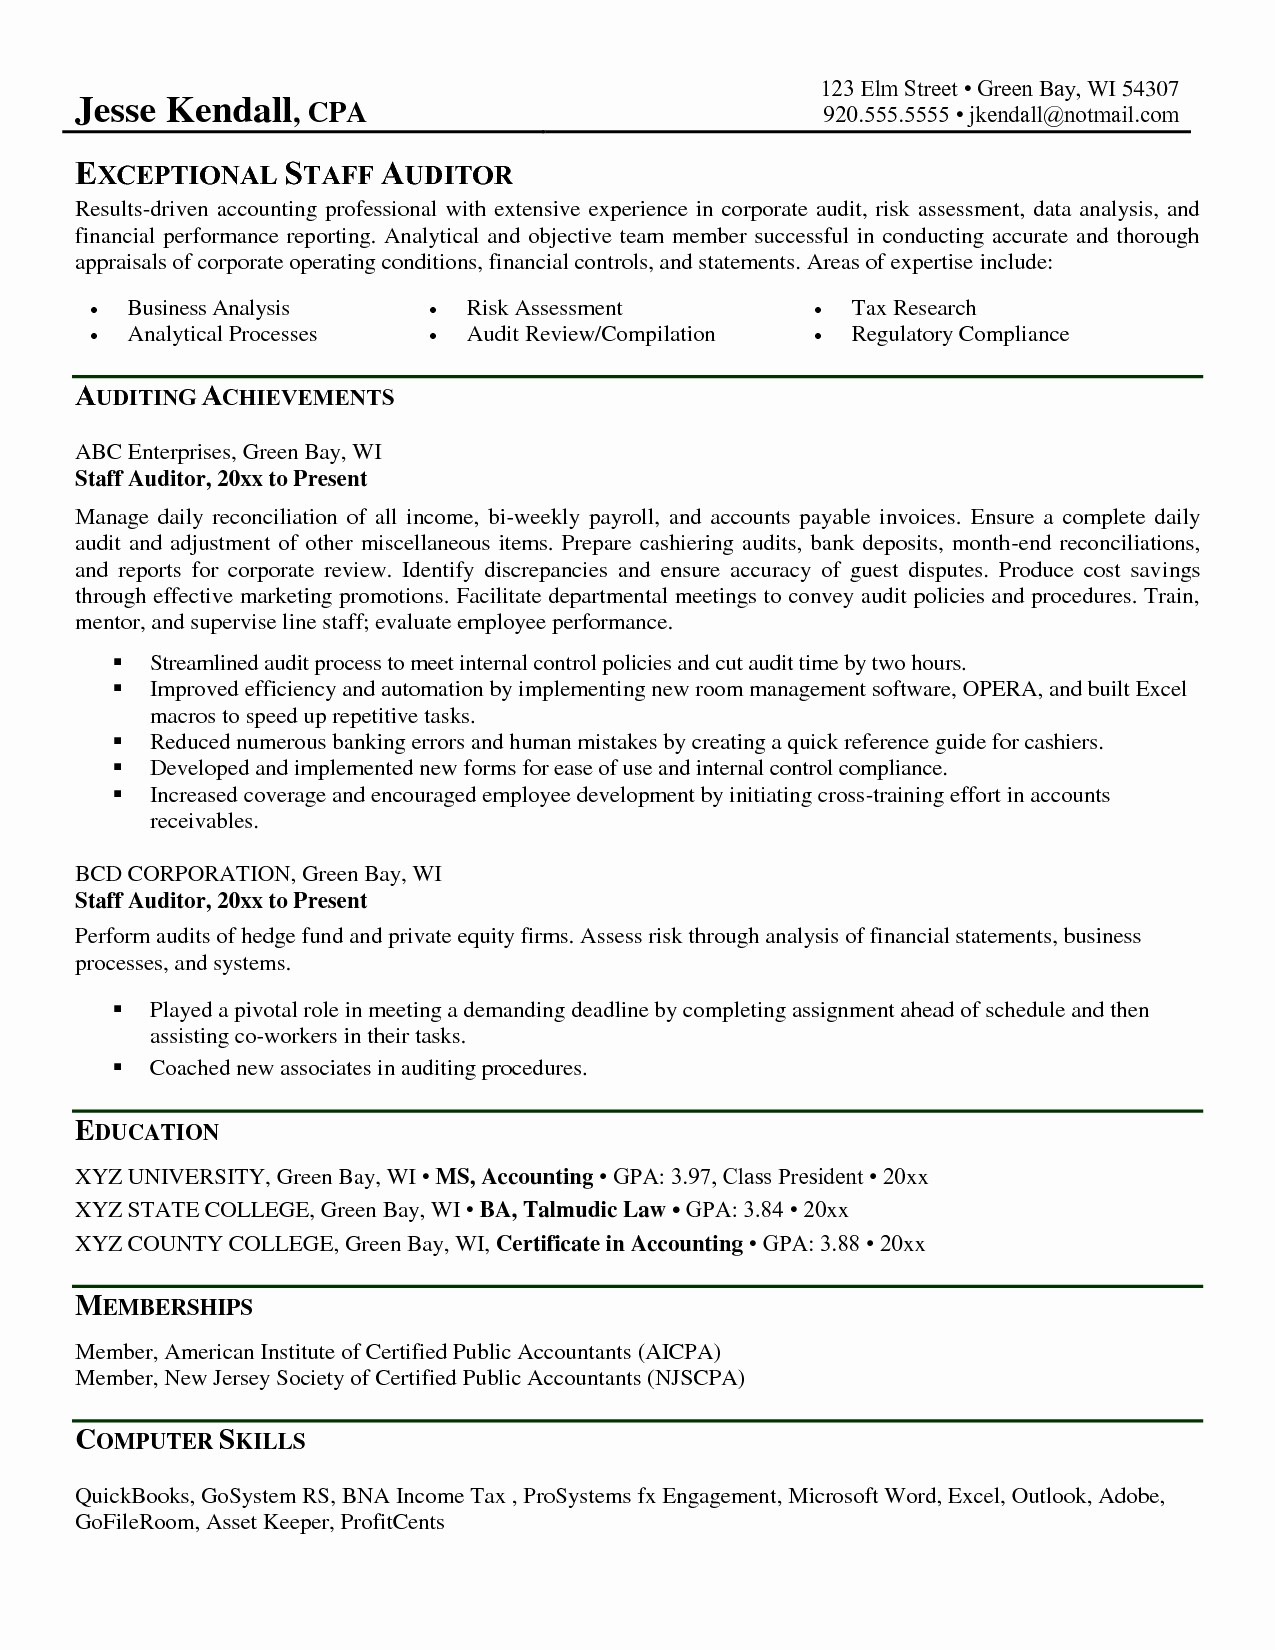 Jimmy Sweeney Cover Letter Template - Perfect Cover Letter Cover Letter for An Executive assistant Luxury